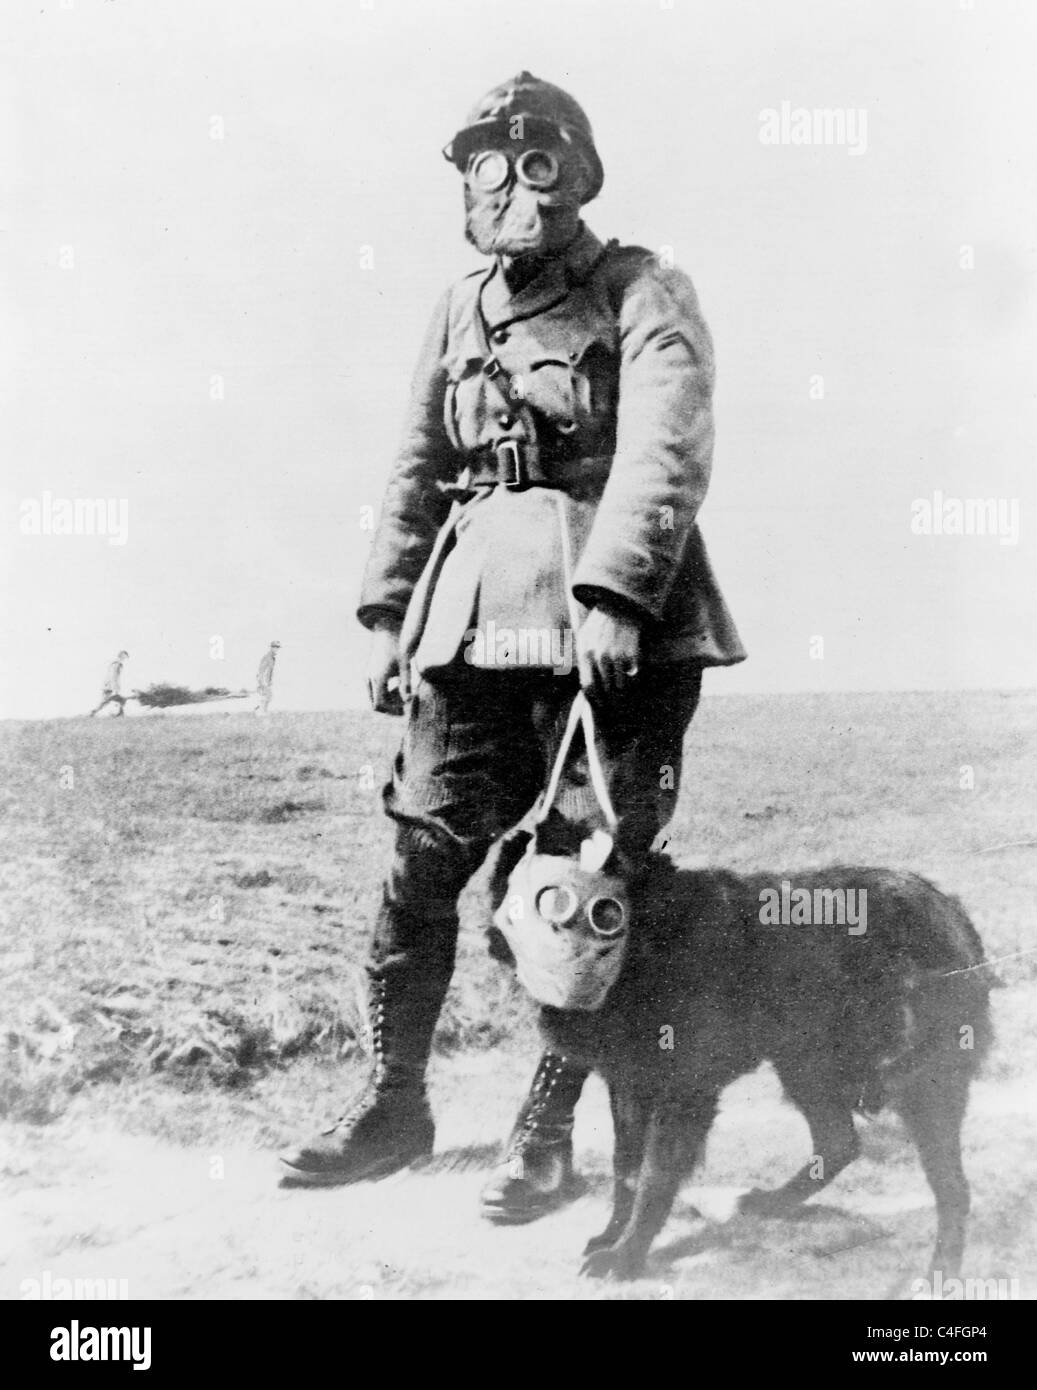 A French sergeant and a dog, both wearing gas masks, on their way to the front line. World War 1 - Stock Image